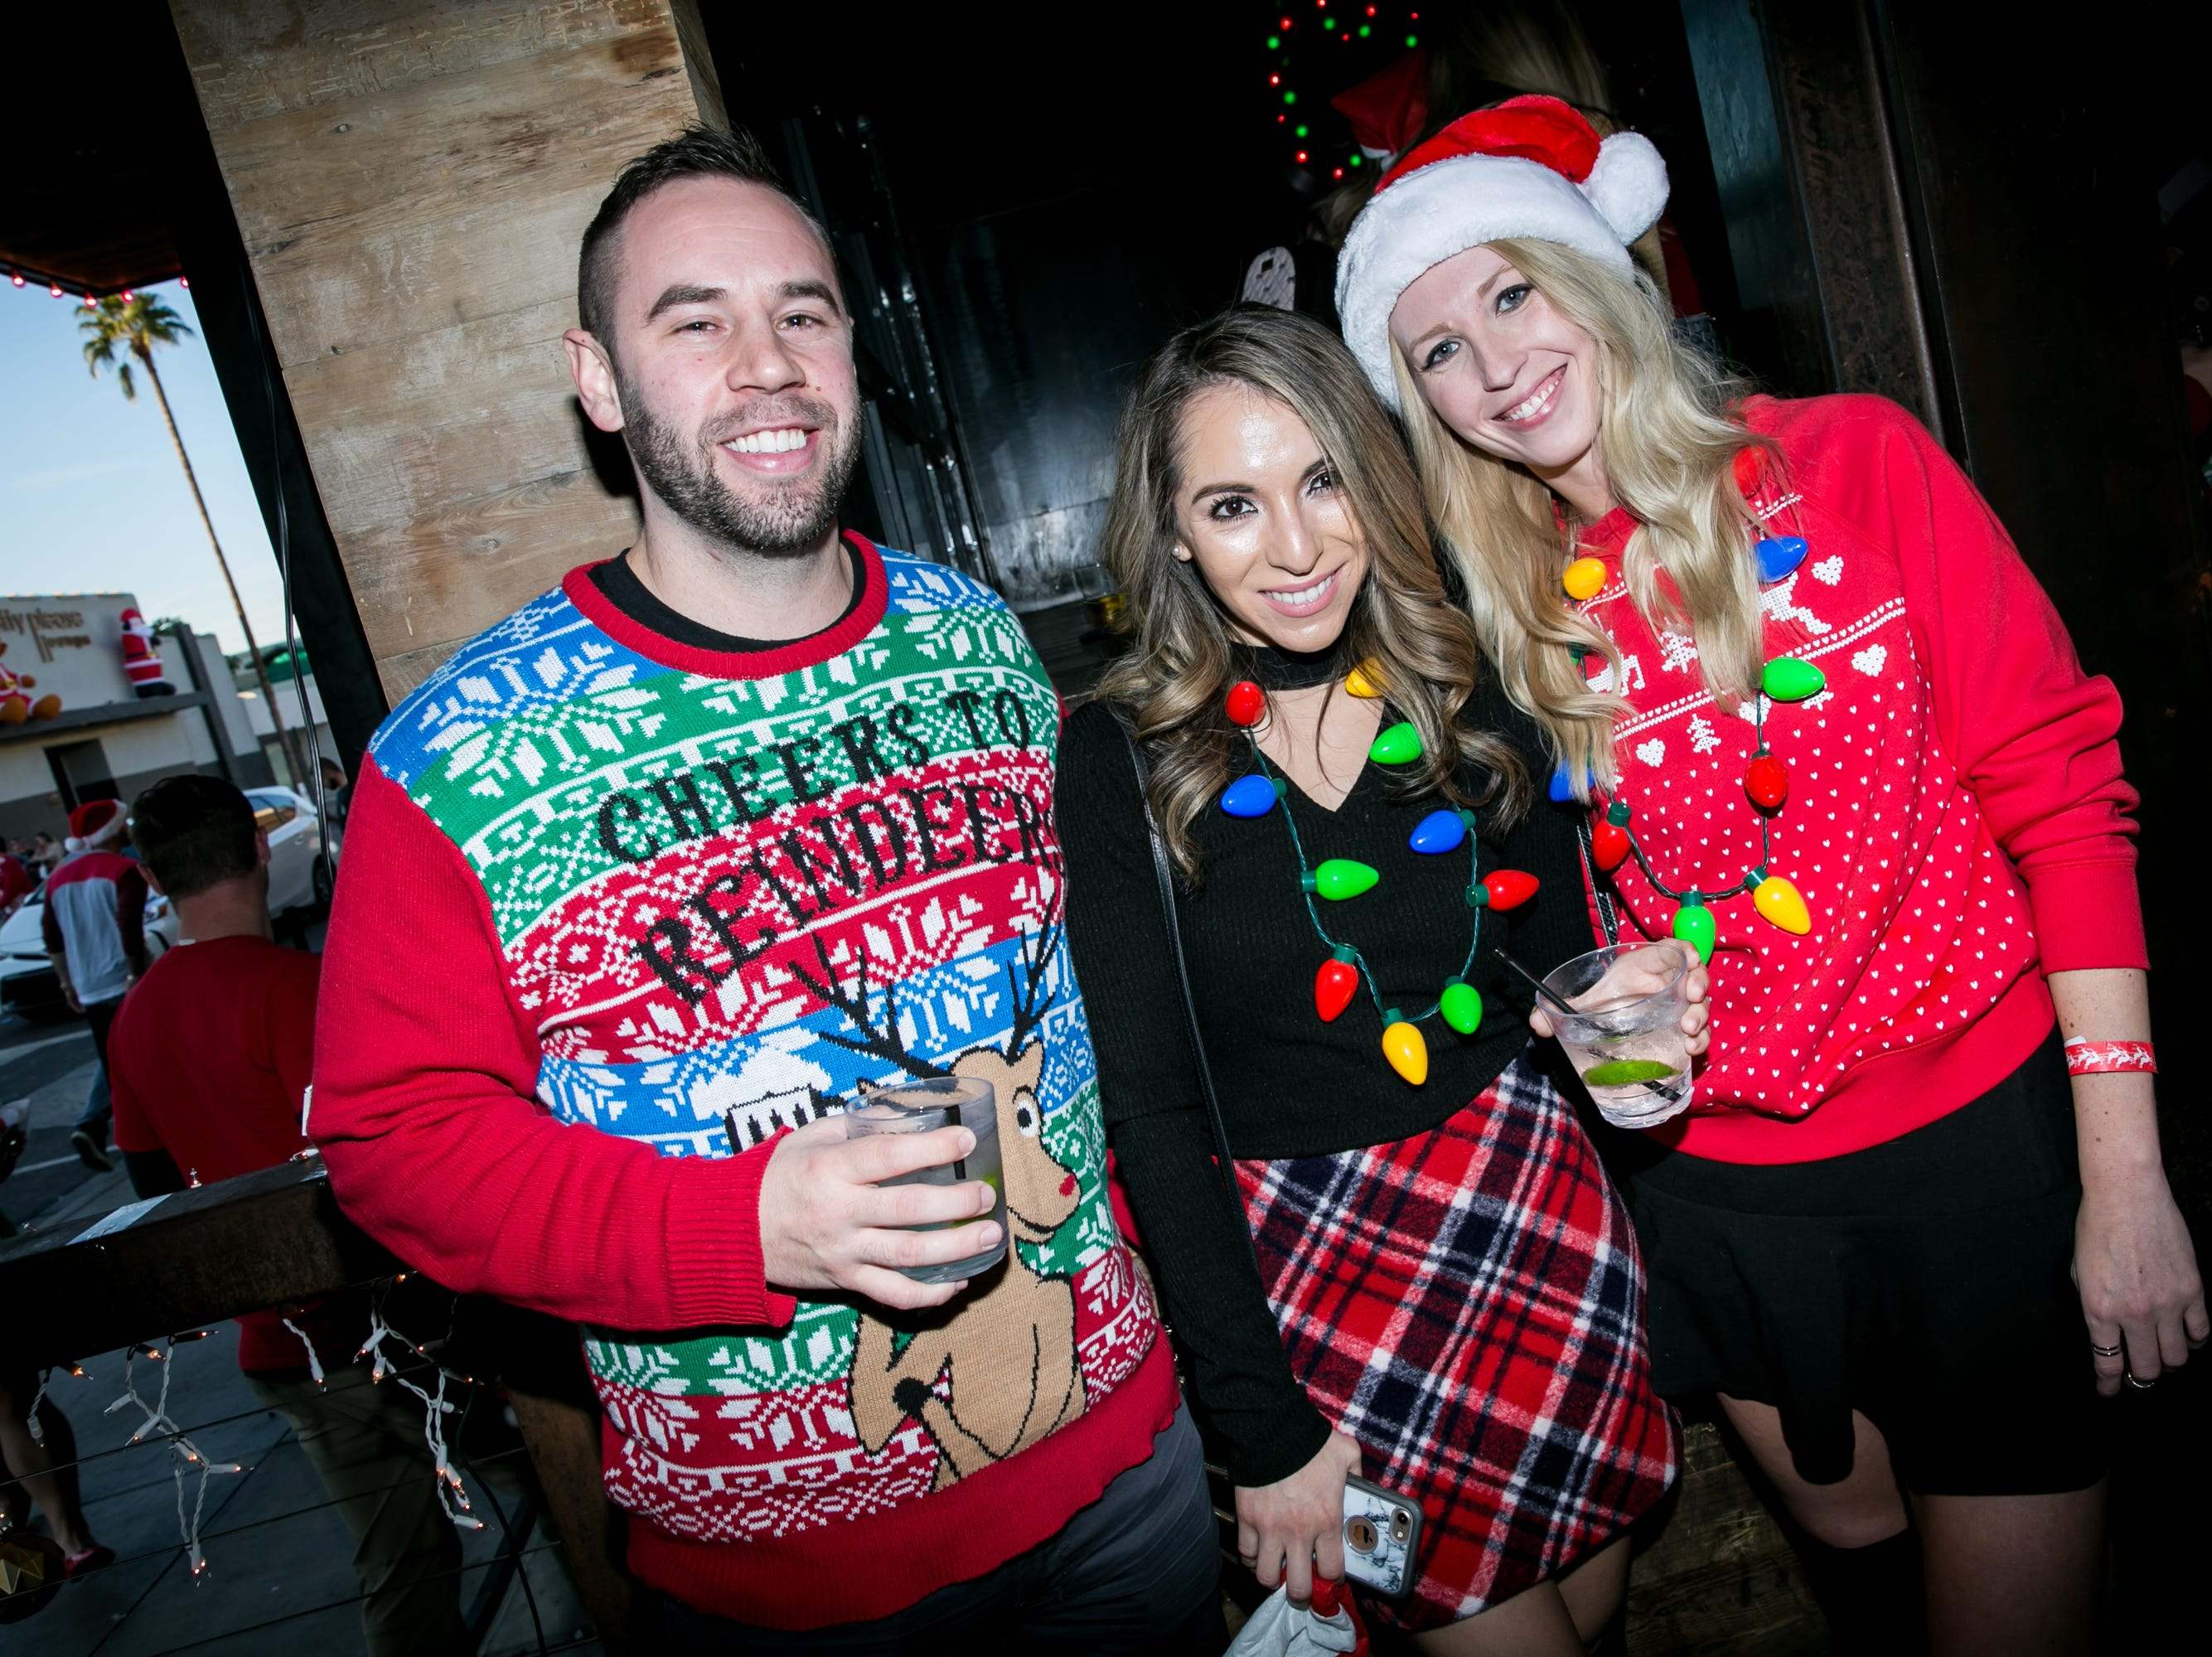 Reindeer were celebrated during the Scottsdale Santa Crawl at The Bevvy on Saturday, December 8, 2018.